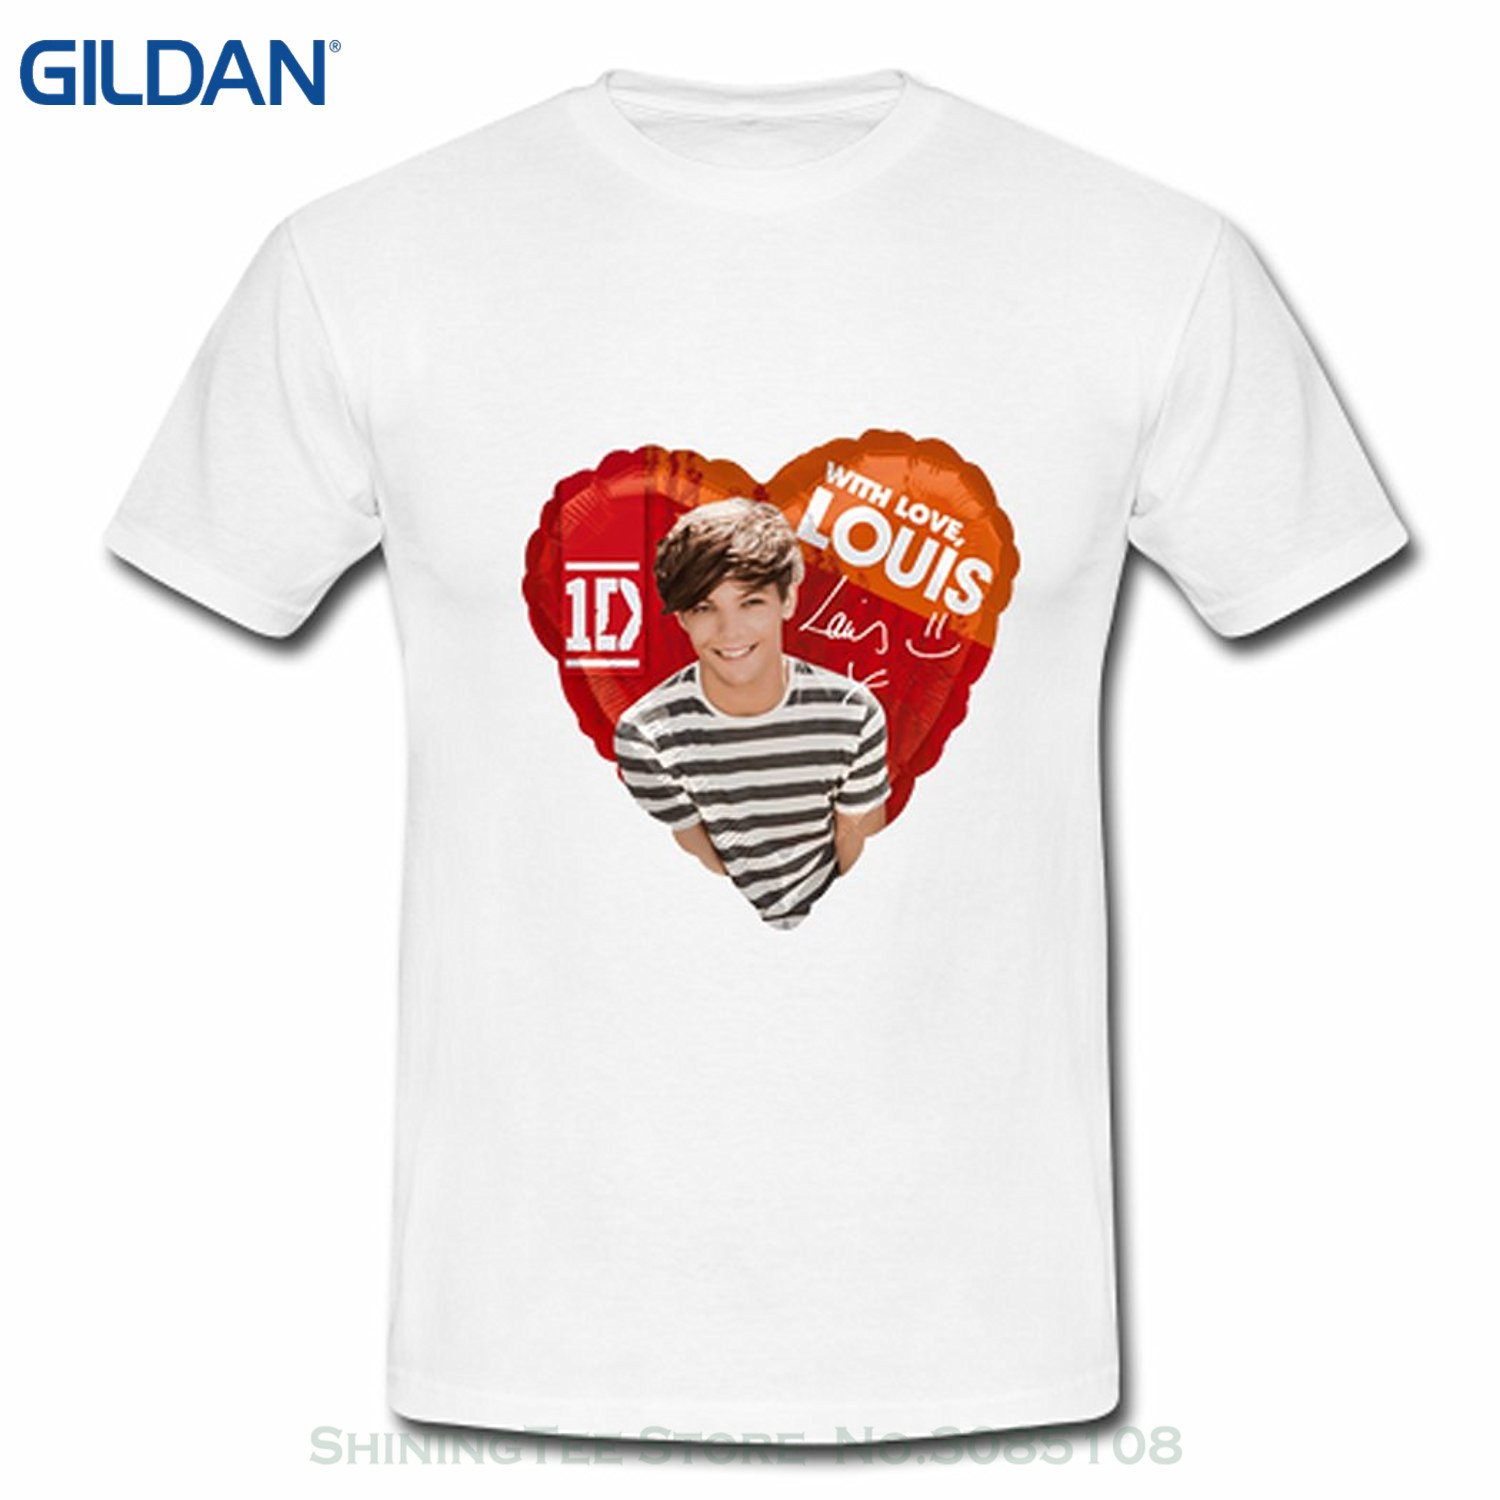 Design t shirt one direction - Gildan Design T Shirts Casual Cool Ahhachi Boy Mens One Direction 1d Louis Tomlinson Photo Logo Tshirt Large White